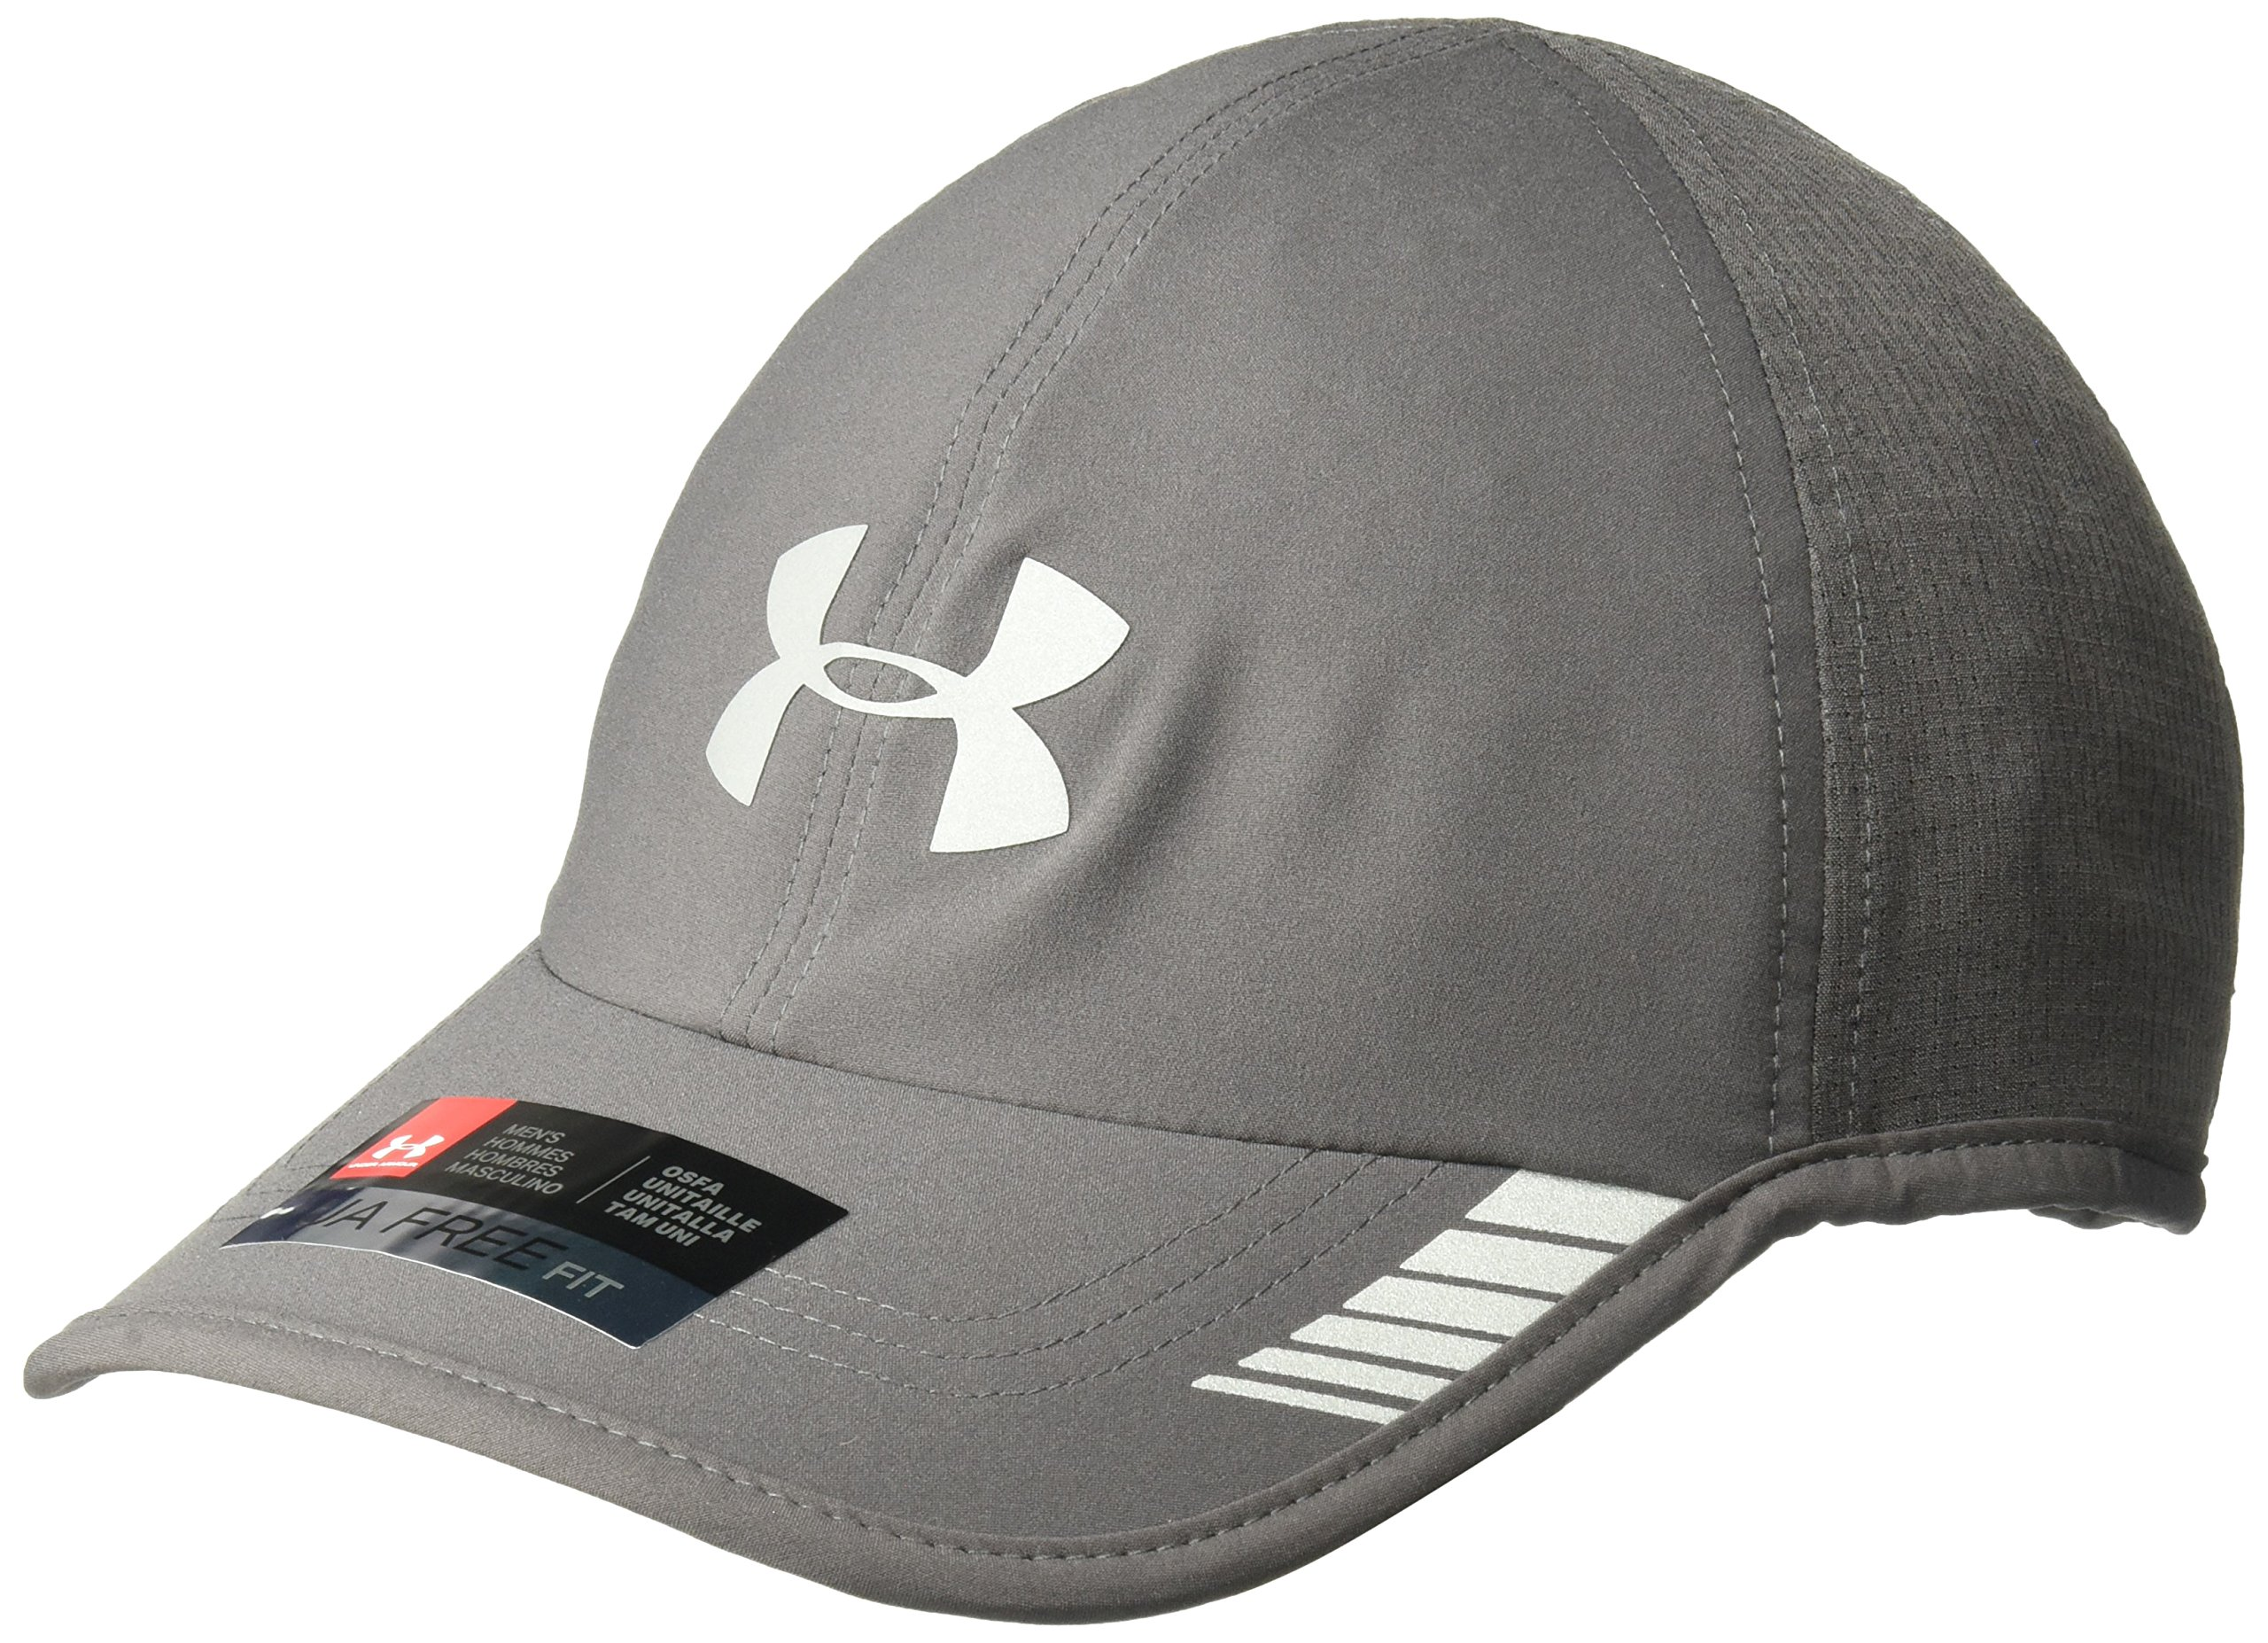 Under Armour Men's Launch ArmourVent Cap, Charcoal , One Size